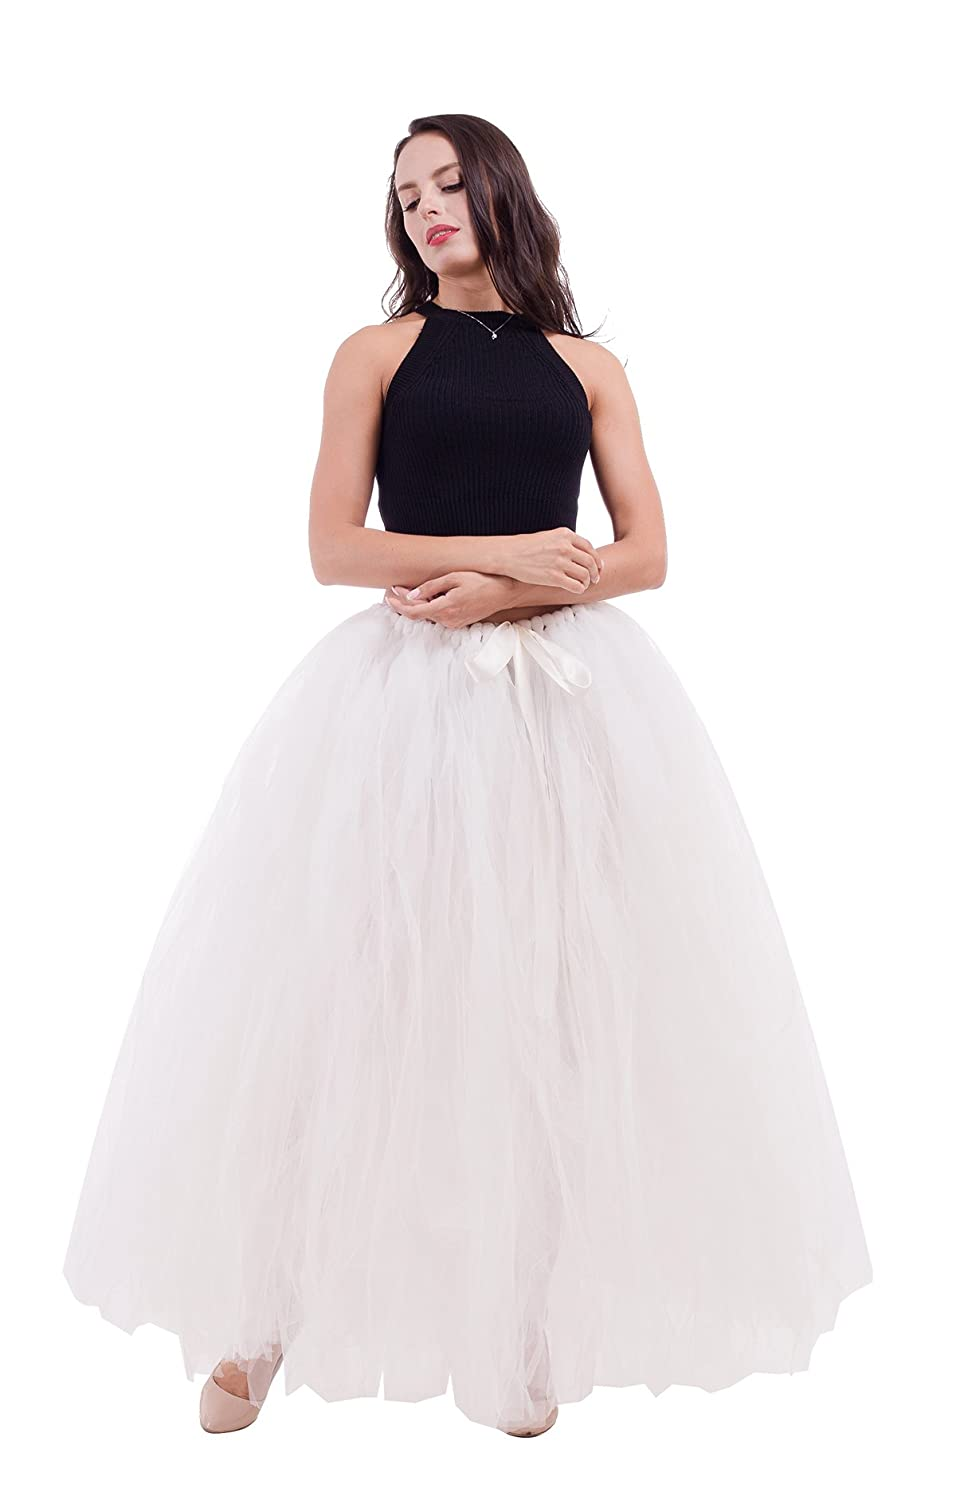 22b1b21693 150 pieces tulle are made into the waistband to create a full silhouette.  The skirt is not lined.